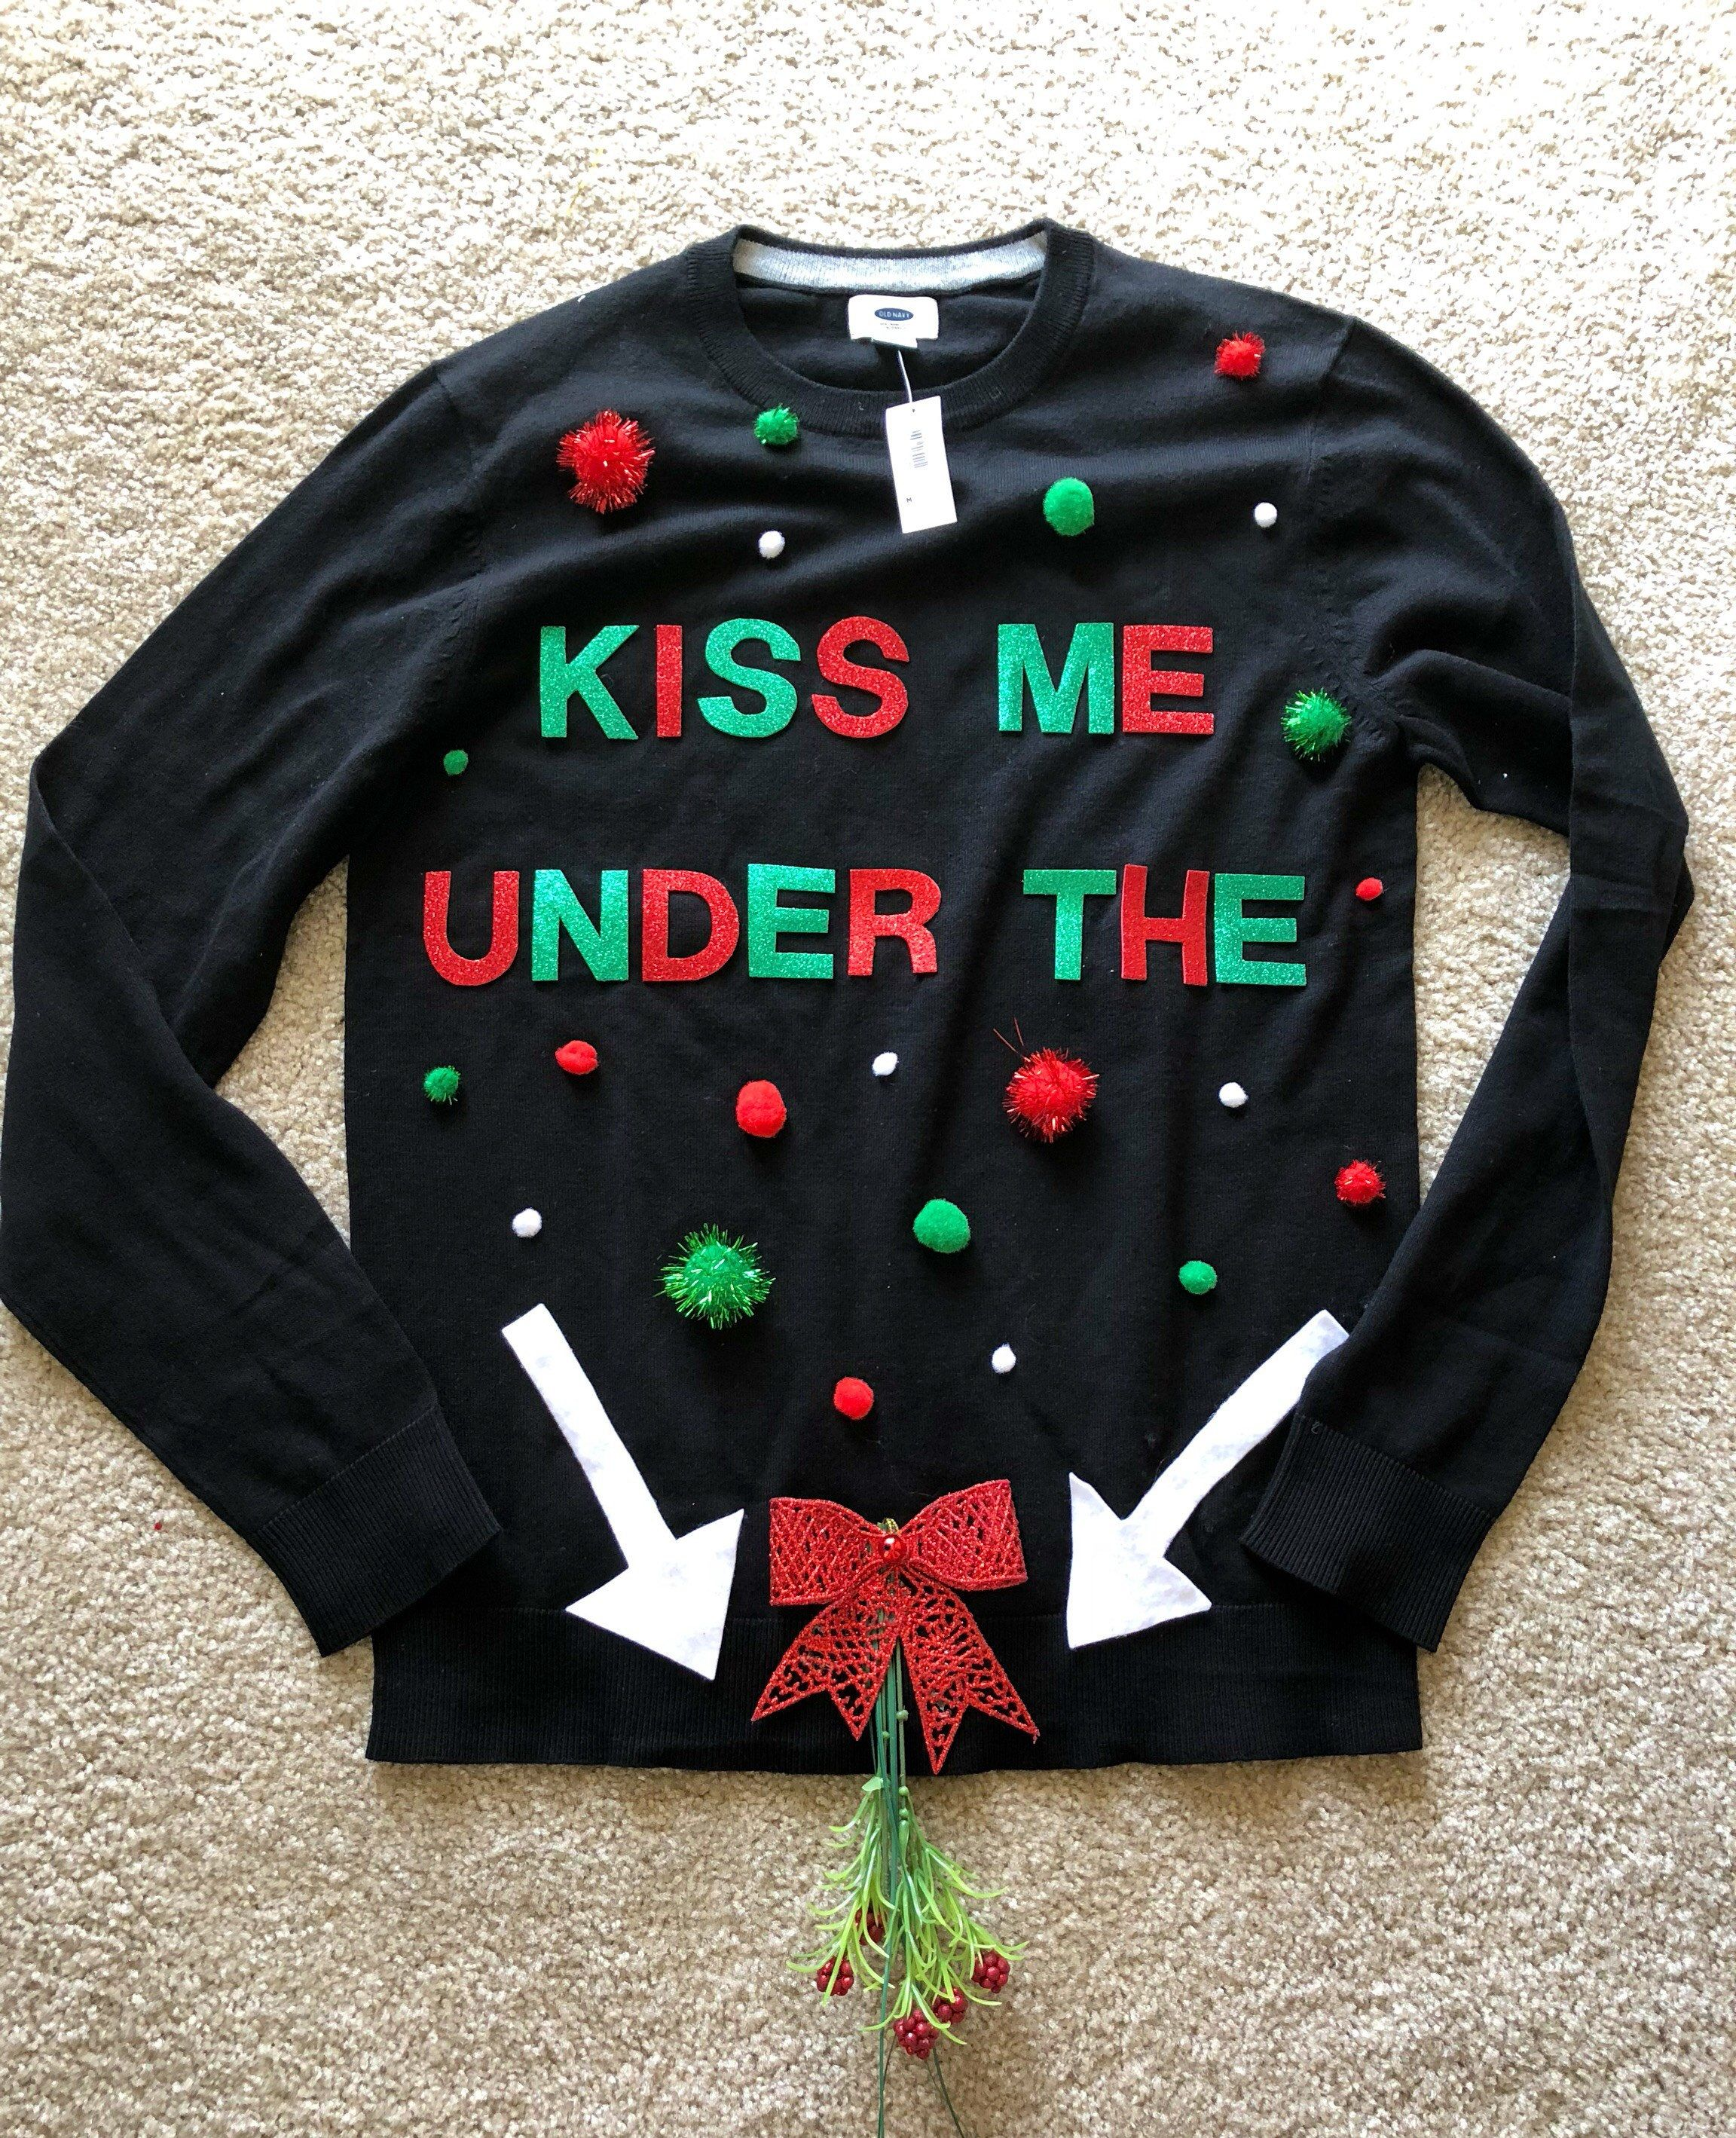 Naughty Ugly Christmas Sweater is so funny! Kiss me under the ...